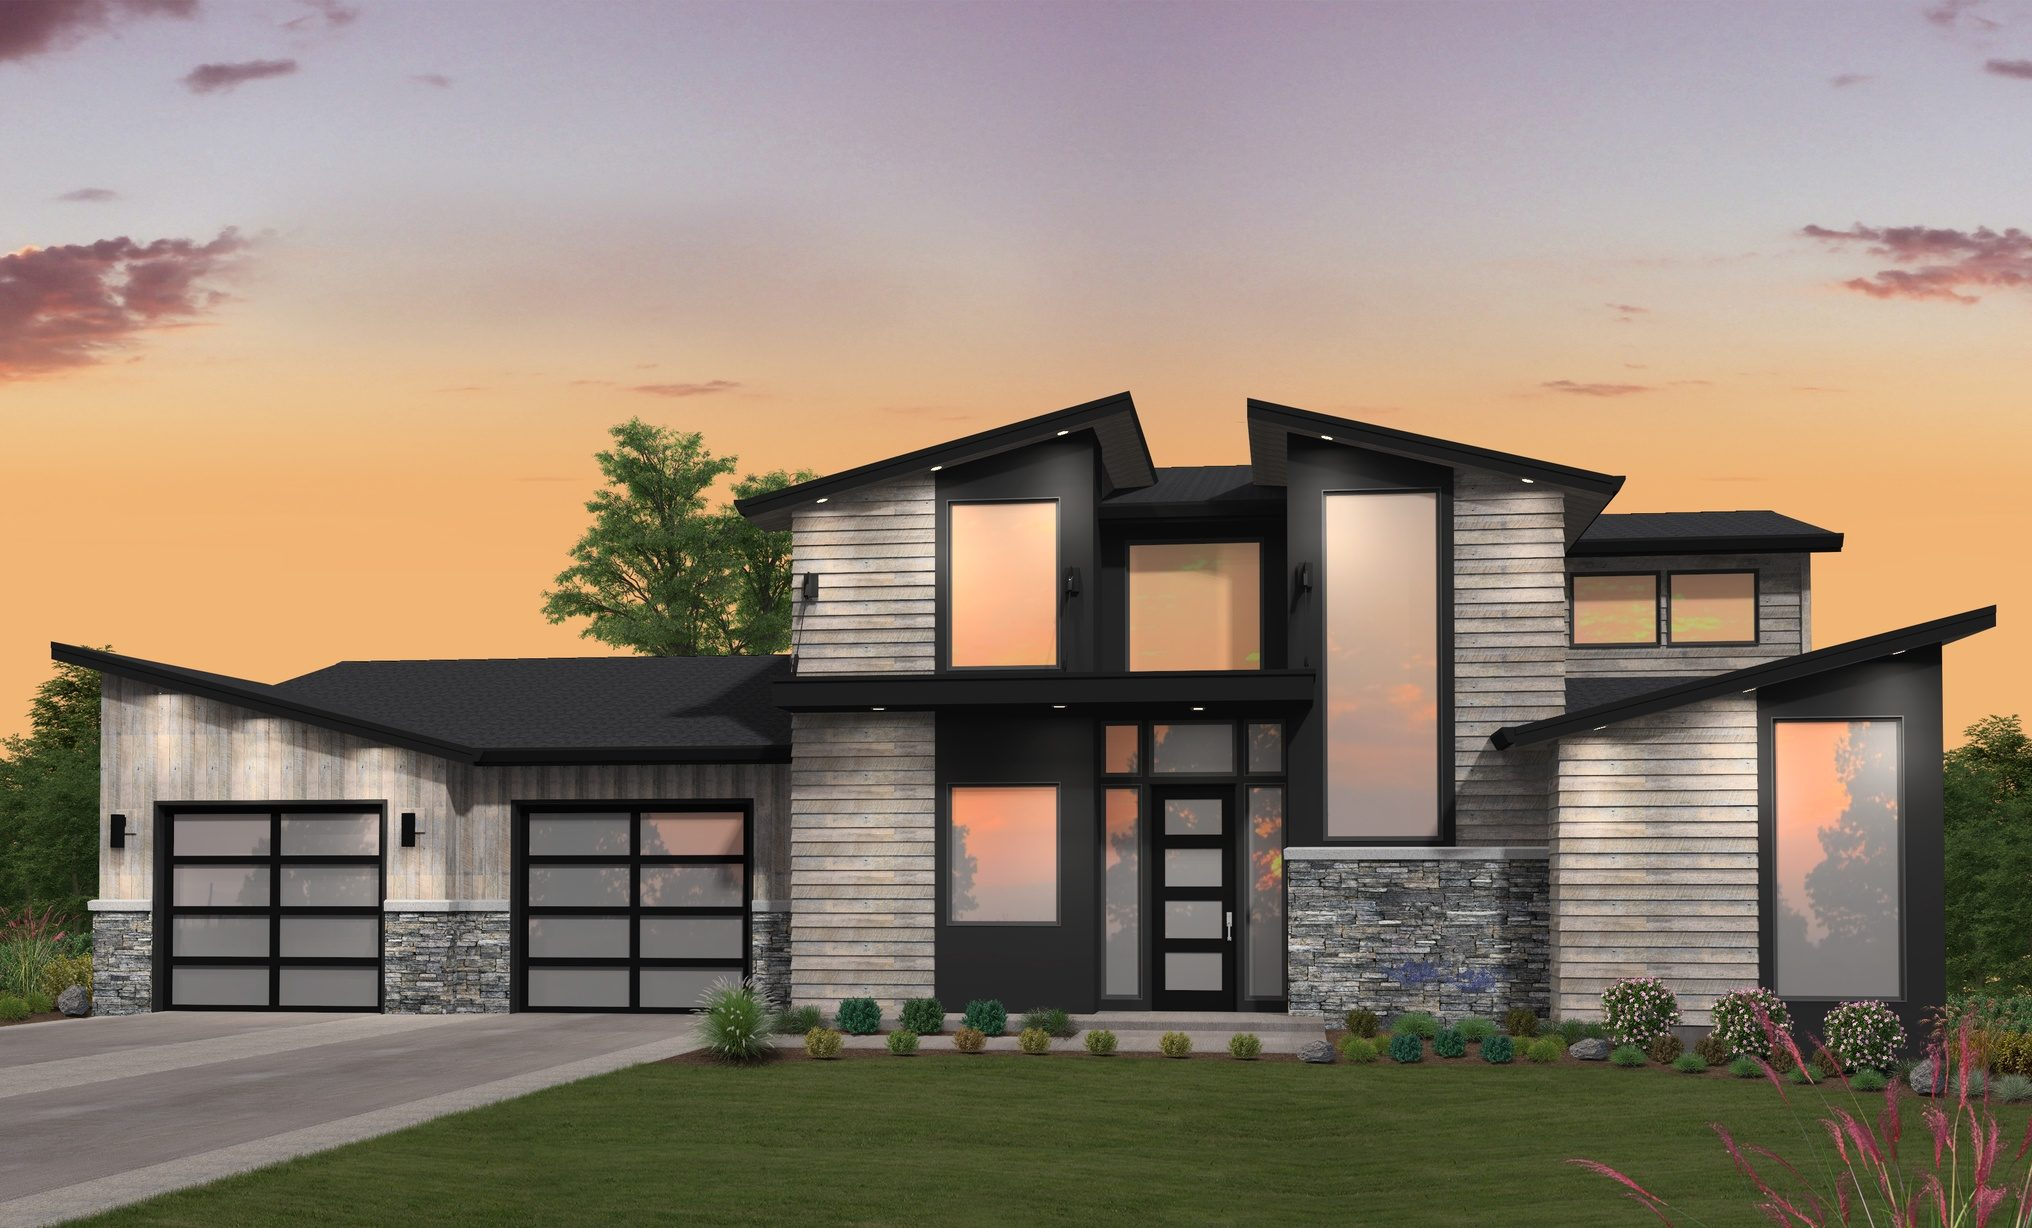 Home Design Ideas For Small Houses: 2 Story Modern House Plan With A Main Floor Master Suite